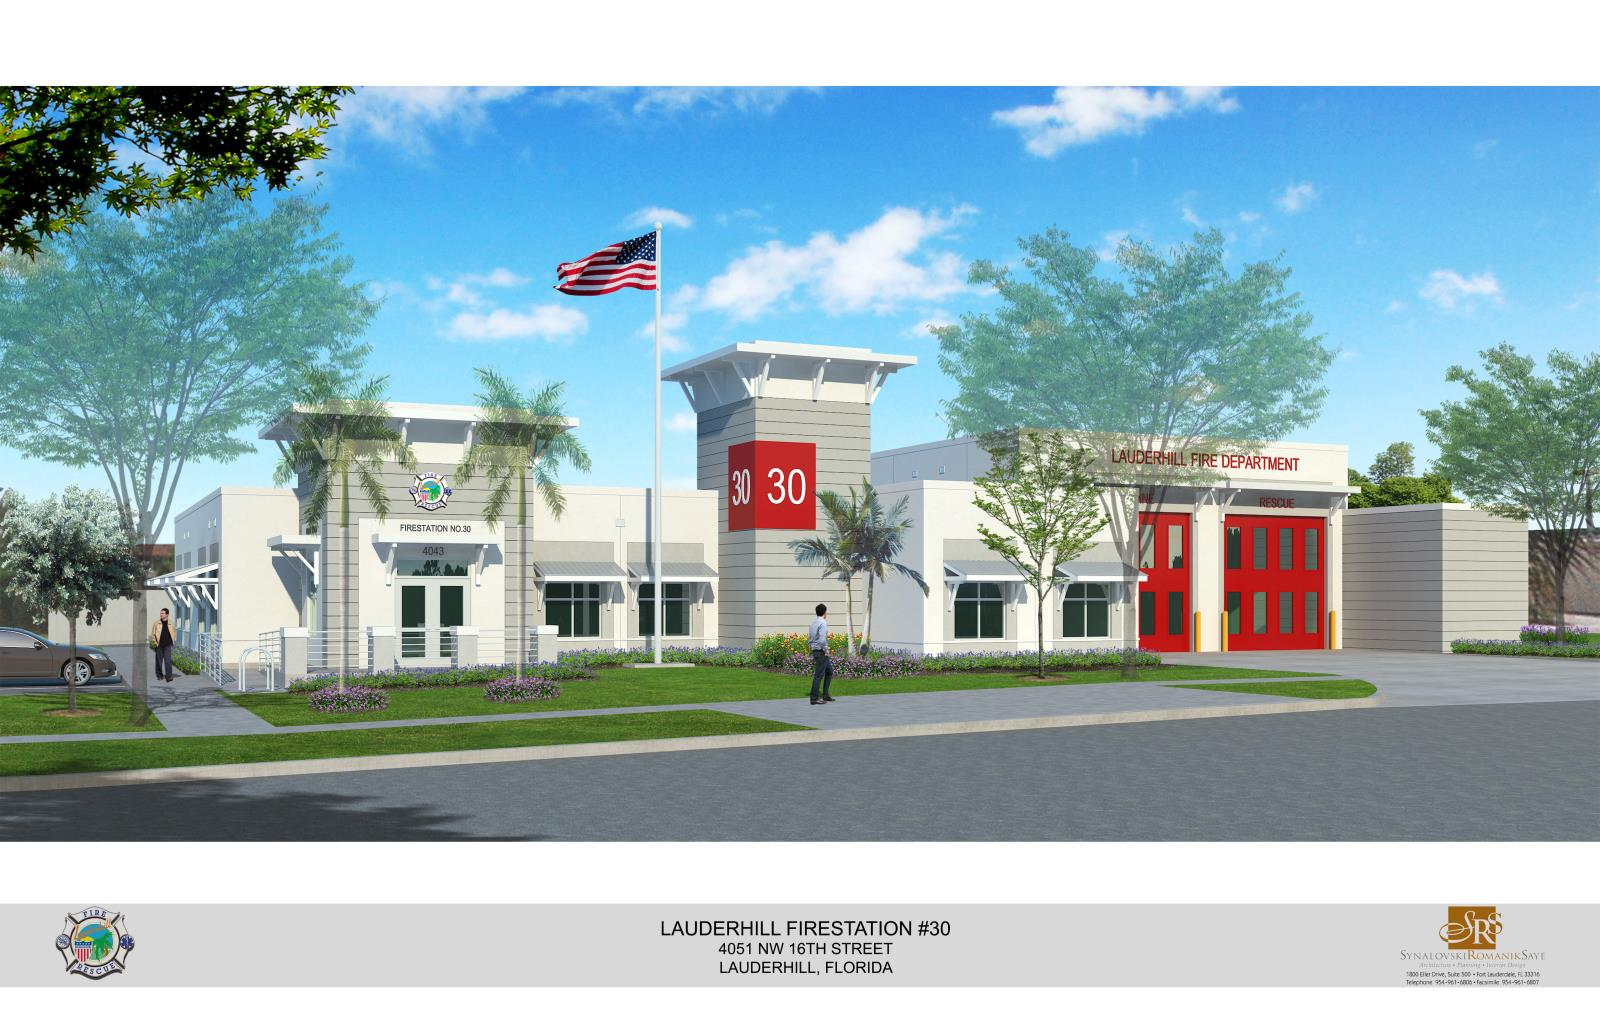 Rendering image of the proposed exterior of station 30.